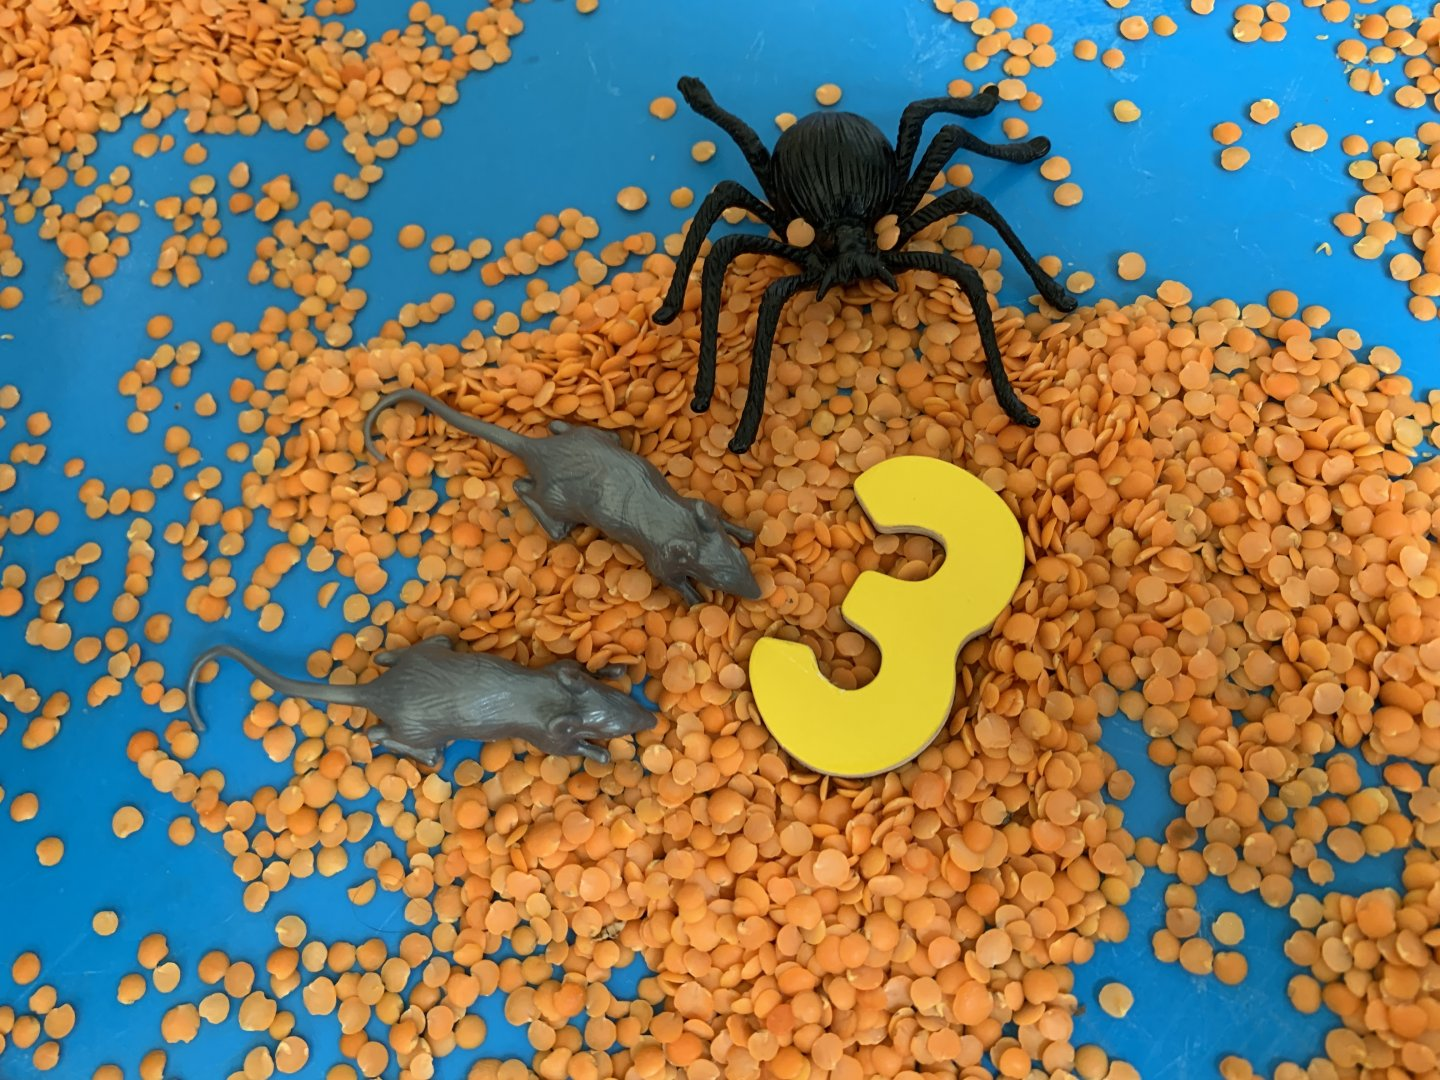 A close up of two silver plastic mice and a large black plastic tarantula next to a yellow number three, on a bed of orange split lentils.